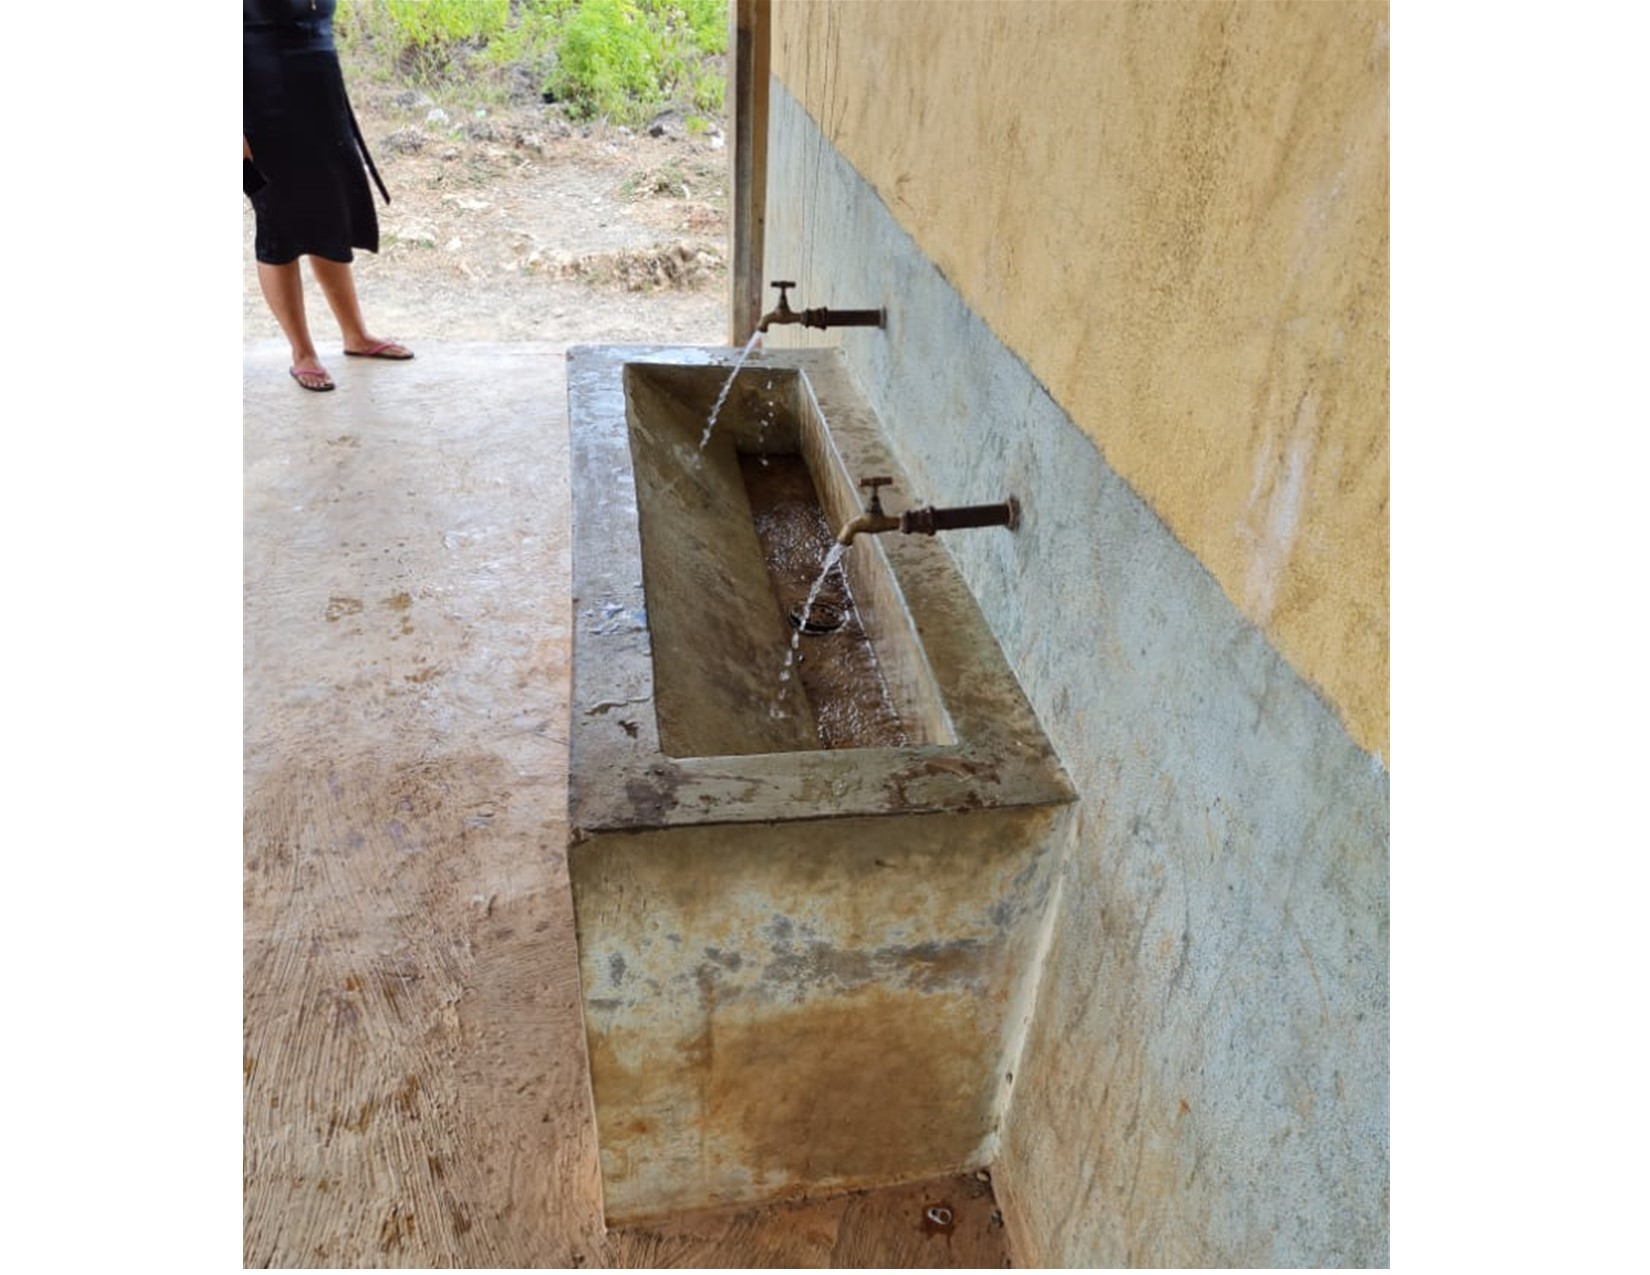 Clean water flows to school in rural Timor-Leste for the first time in ten years